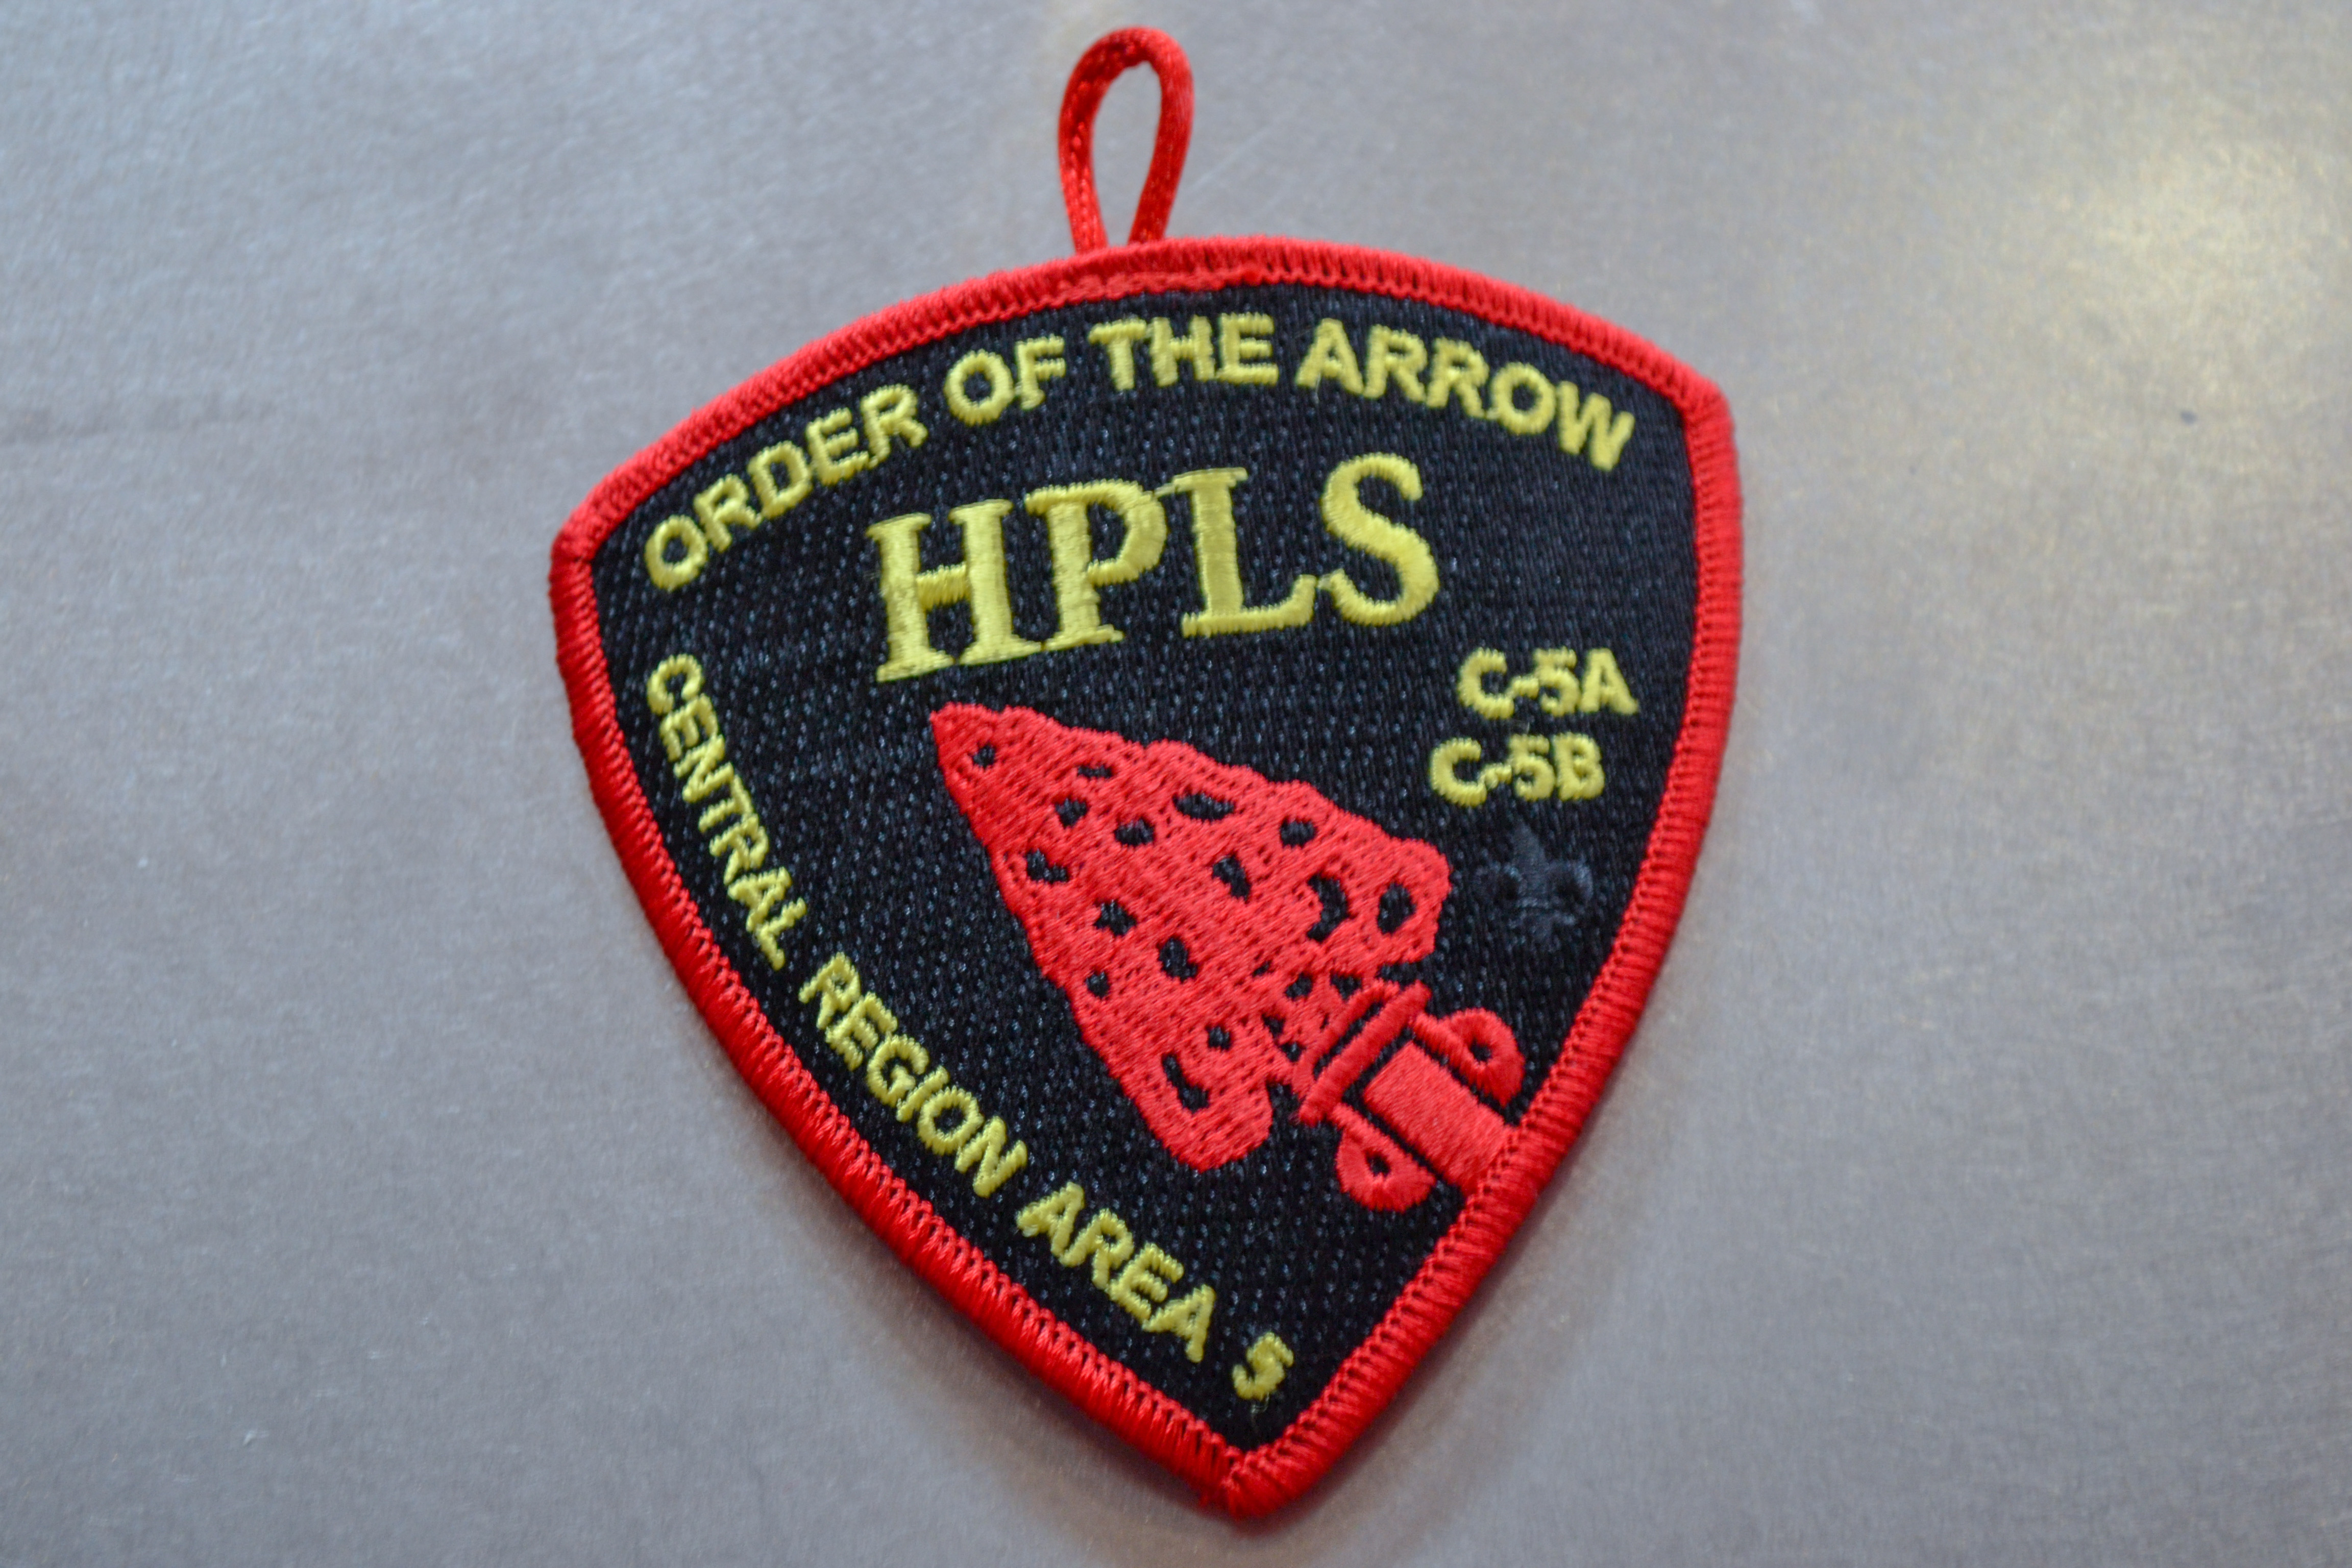 Central Region – Order of the Arrow